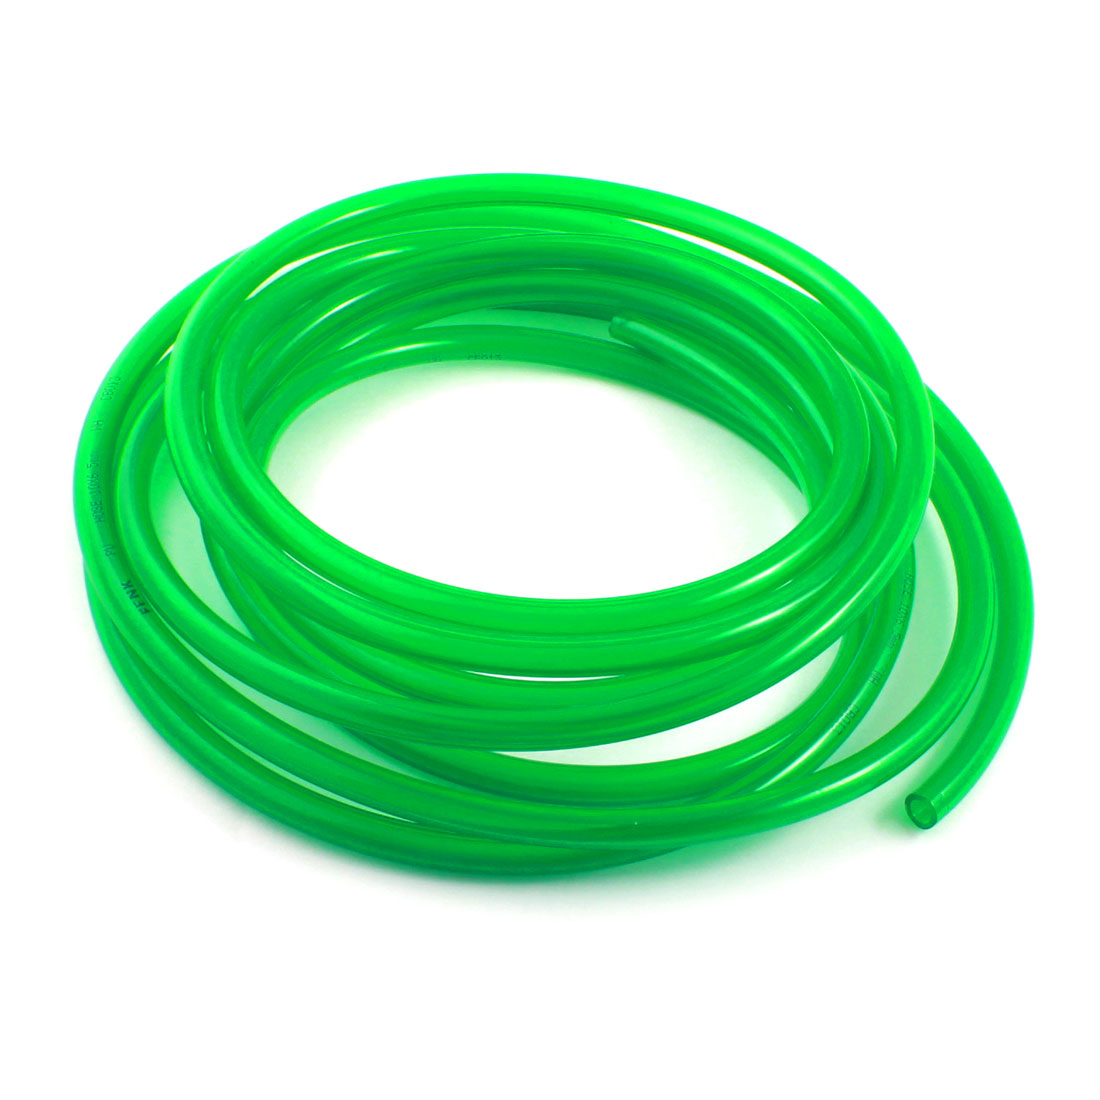 Engine Gas Fuel Oil Injection PU Line Tubing Tube 6.5x10mm 16.5Ft Clear Green